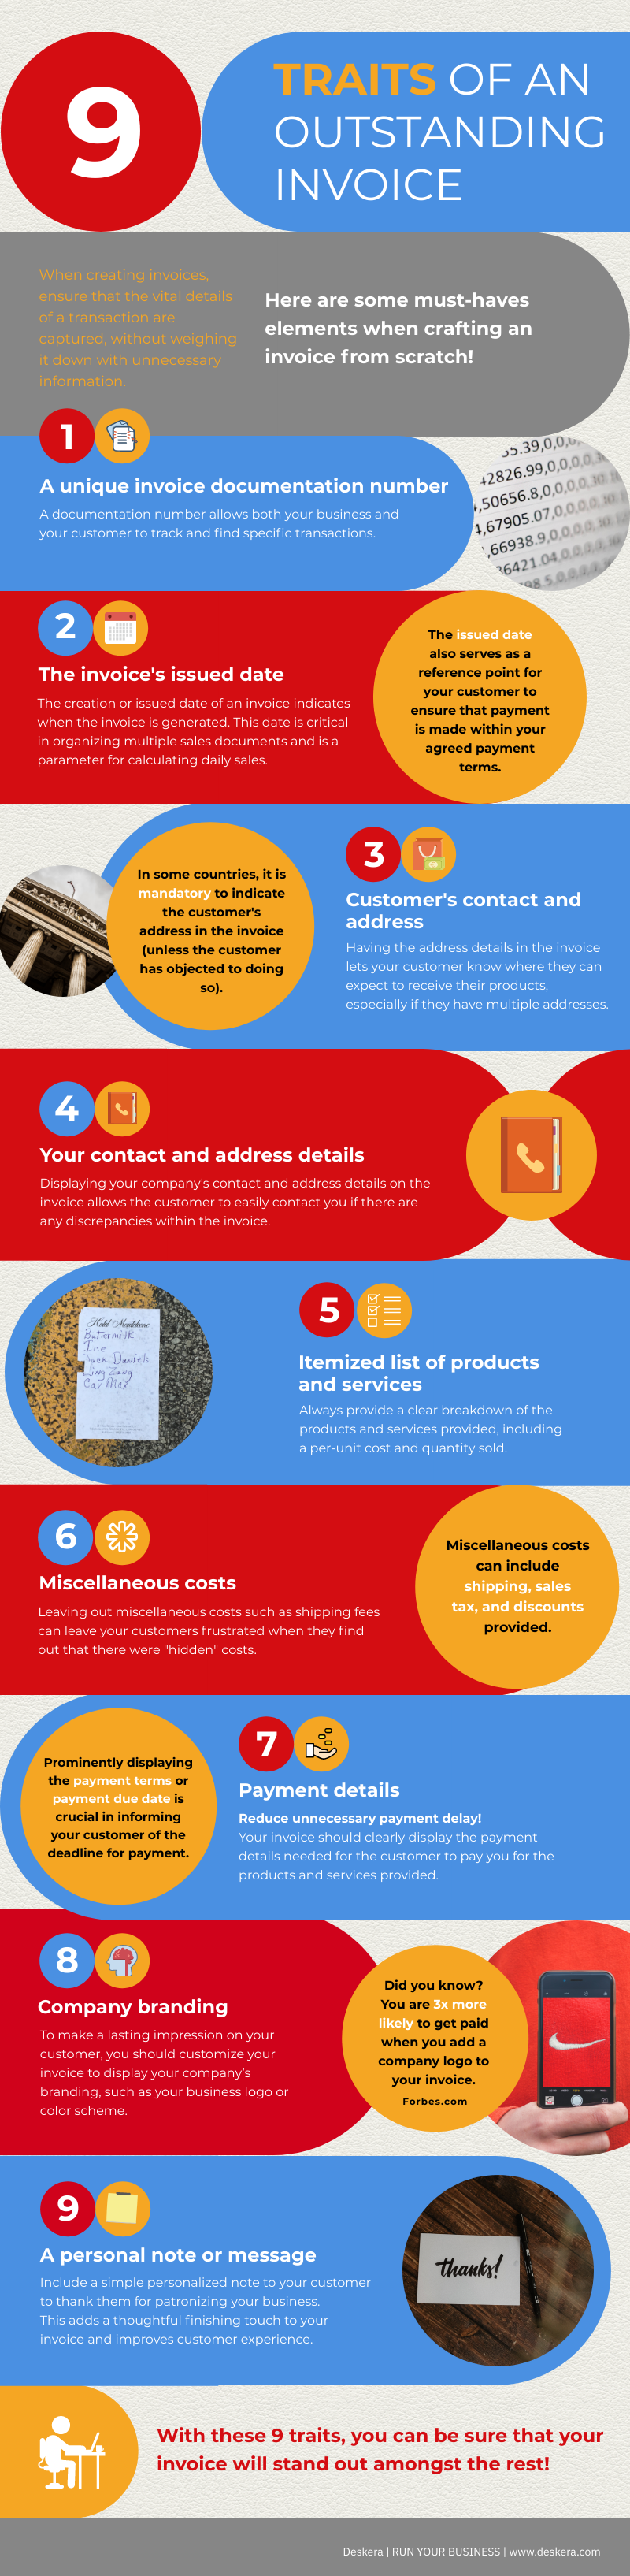 Infographic for 9 Traits of an outstanding invoice